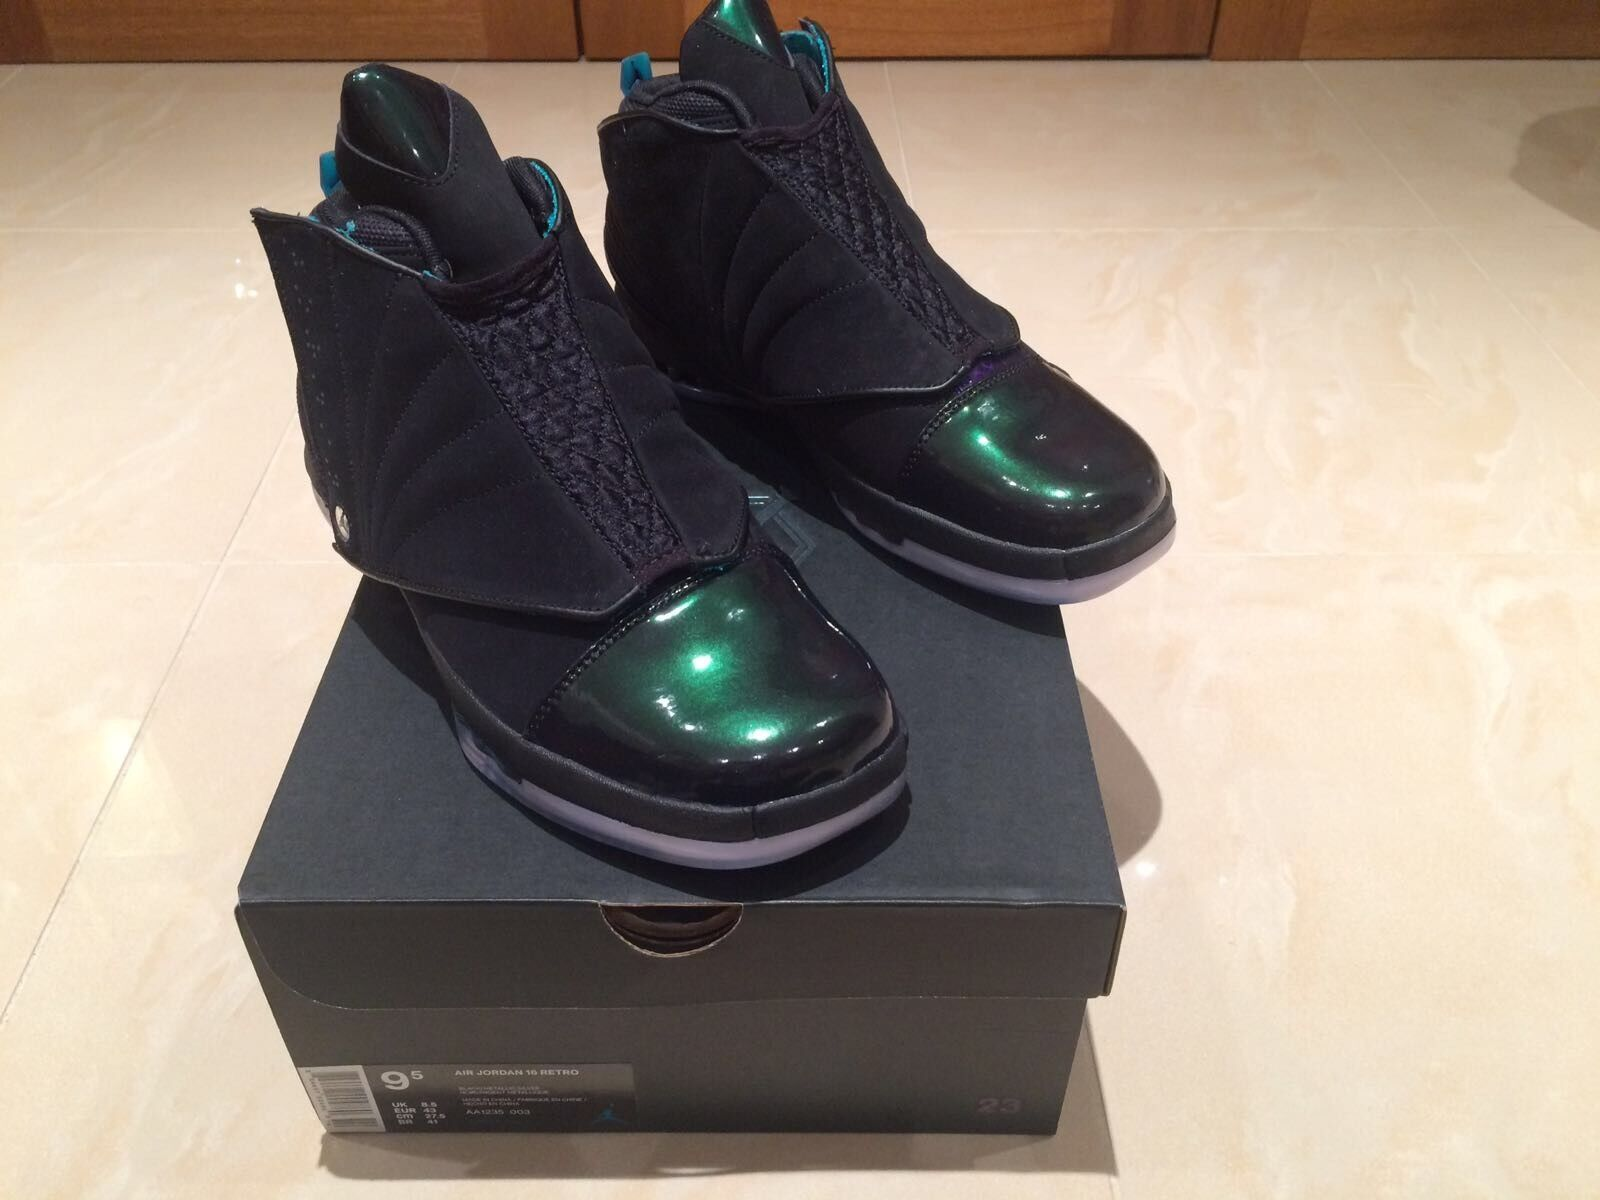 NIKE AIR SIZES8.5 JORDAN 16 BOARDROOM LIMITED EDITION SIZES8.5 AIR & 9.5 NEW 1b4d24